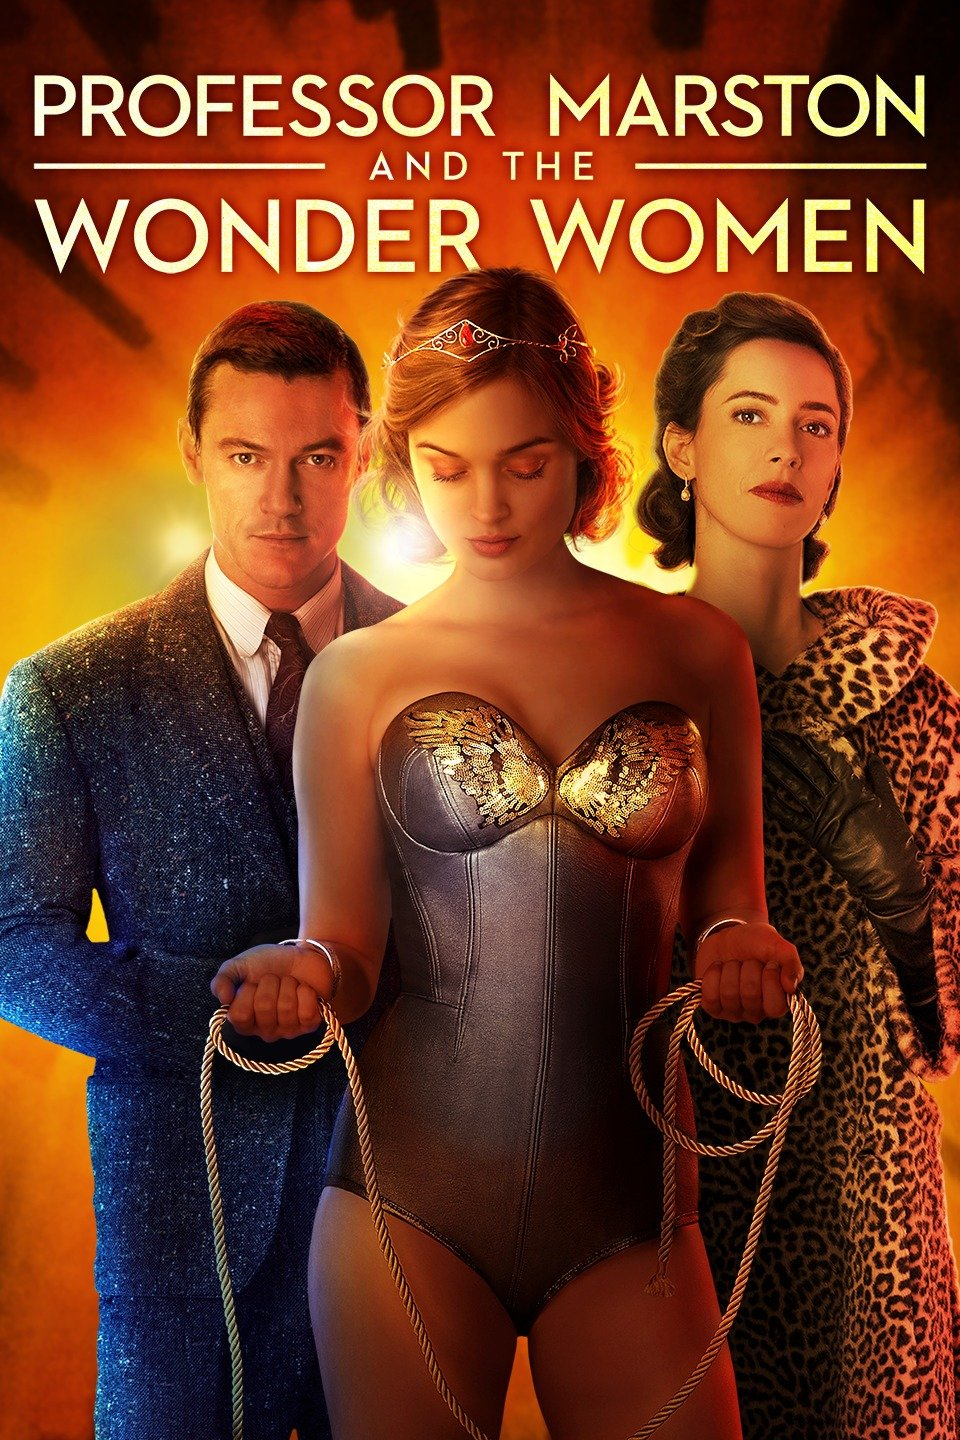 [18+] Professor Marston And The Wonder Women 2017 English 720p BluRay x264 790MB